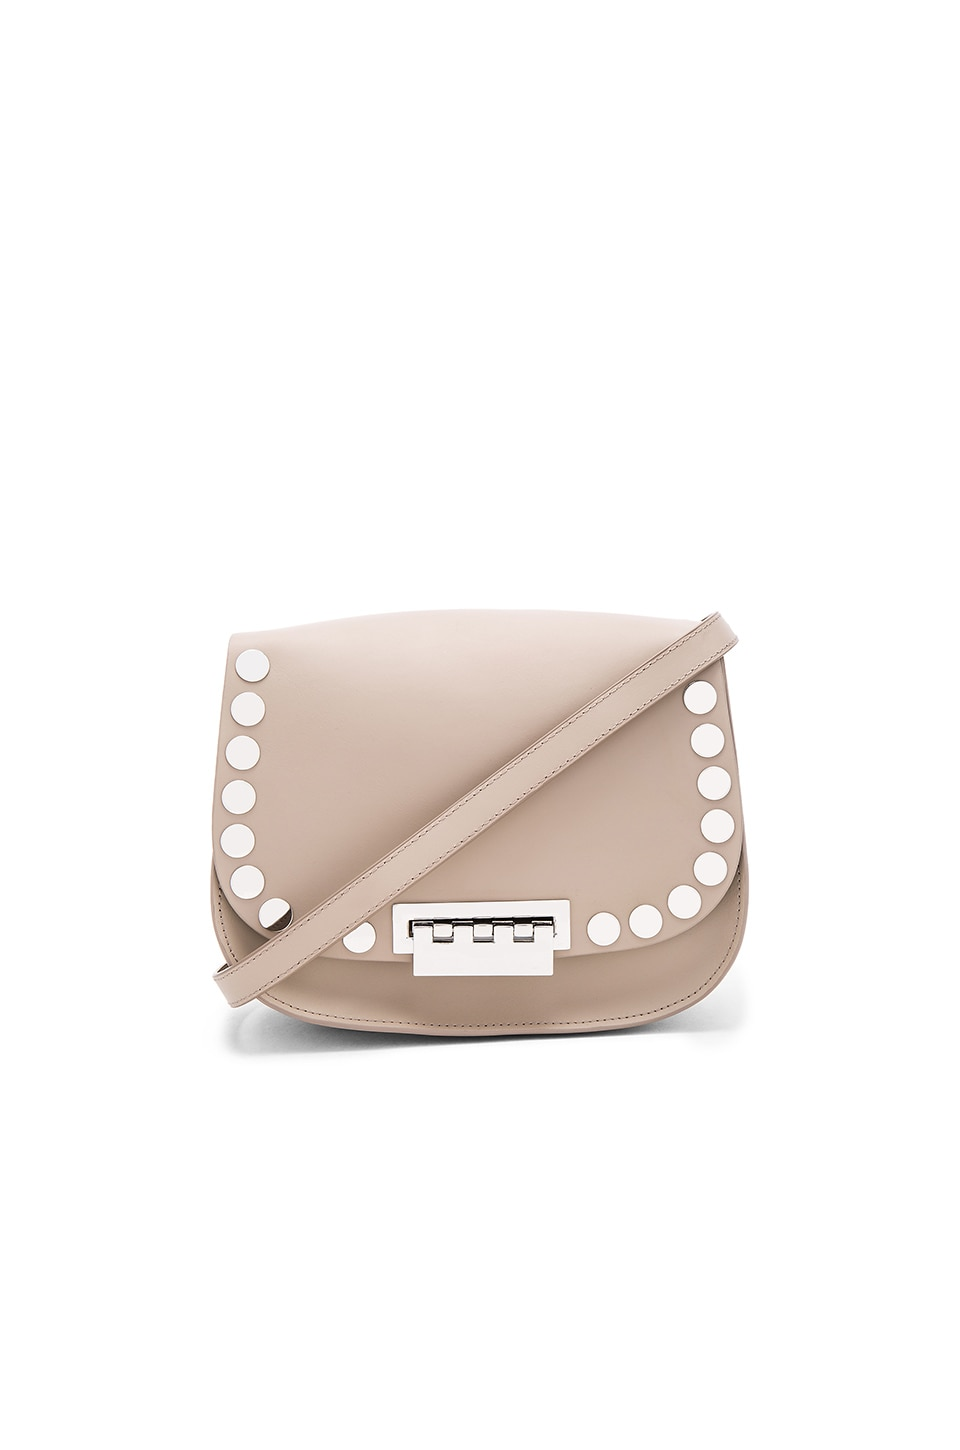 Zac Zac Posen Eartha Iconic Saddle Bag in Malt